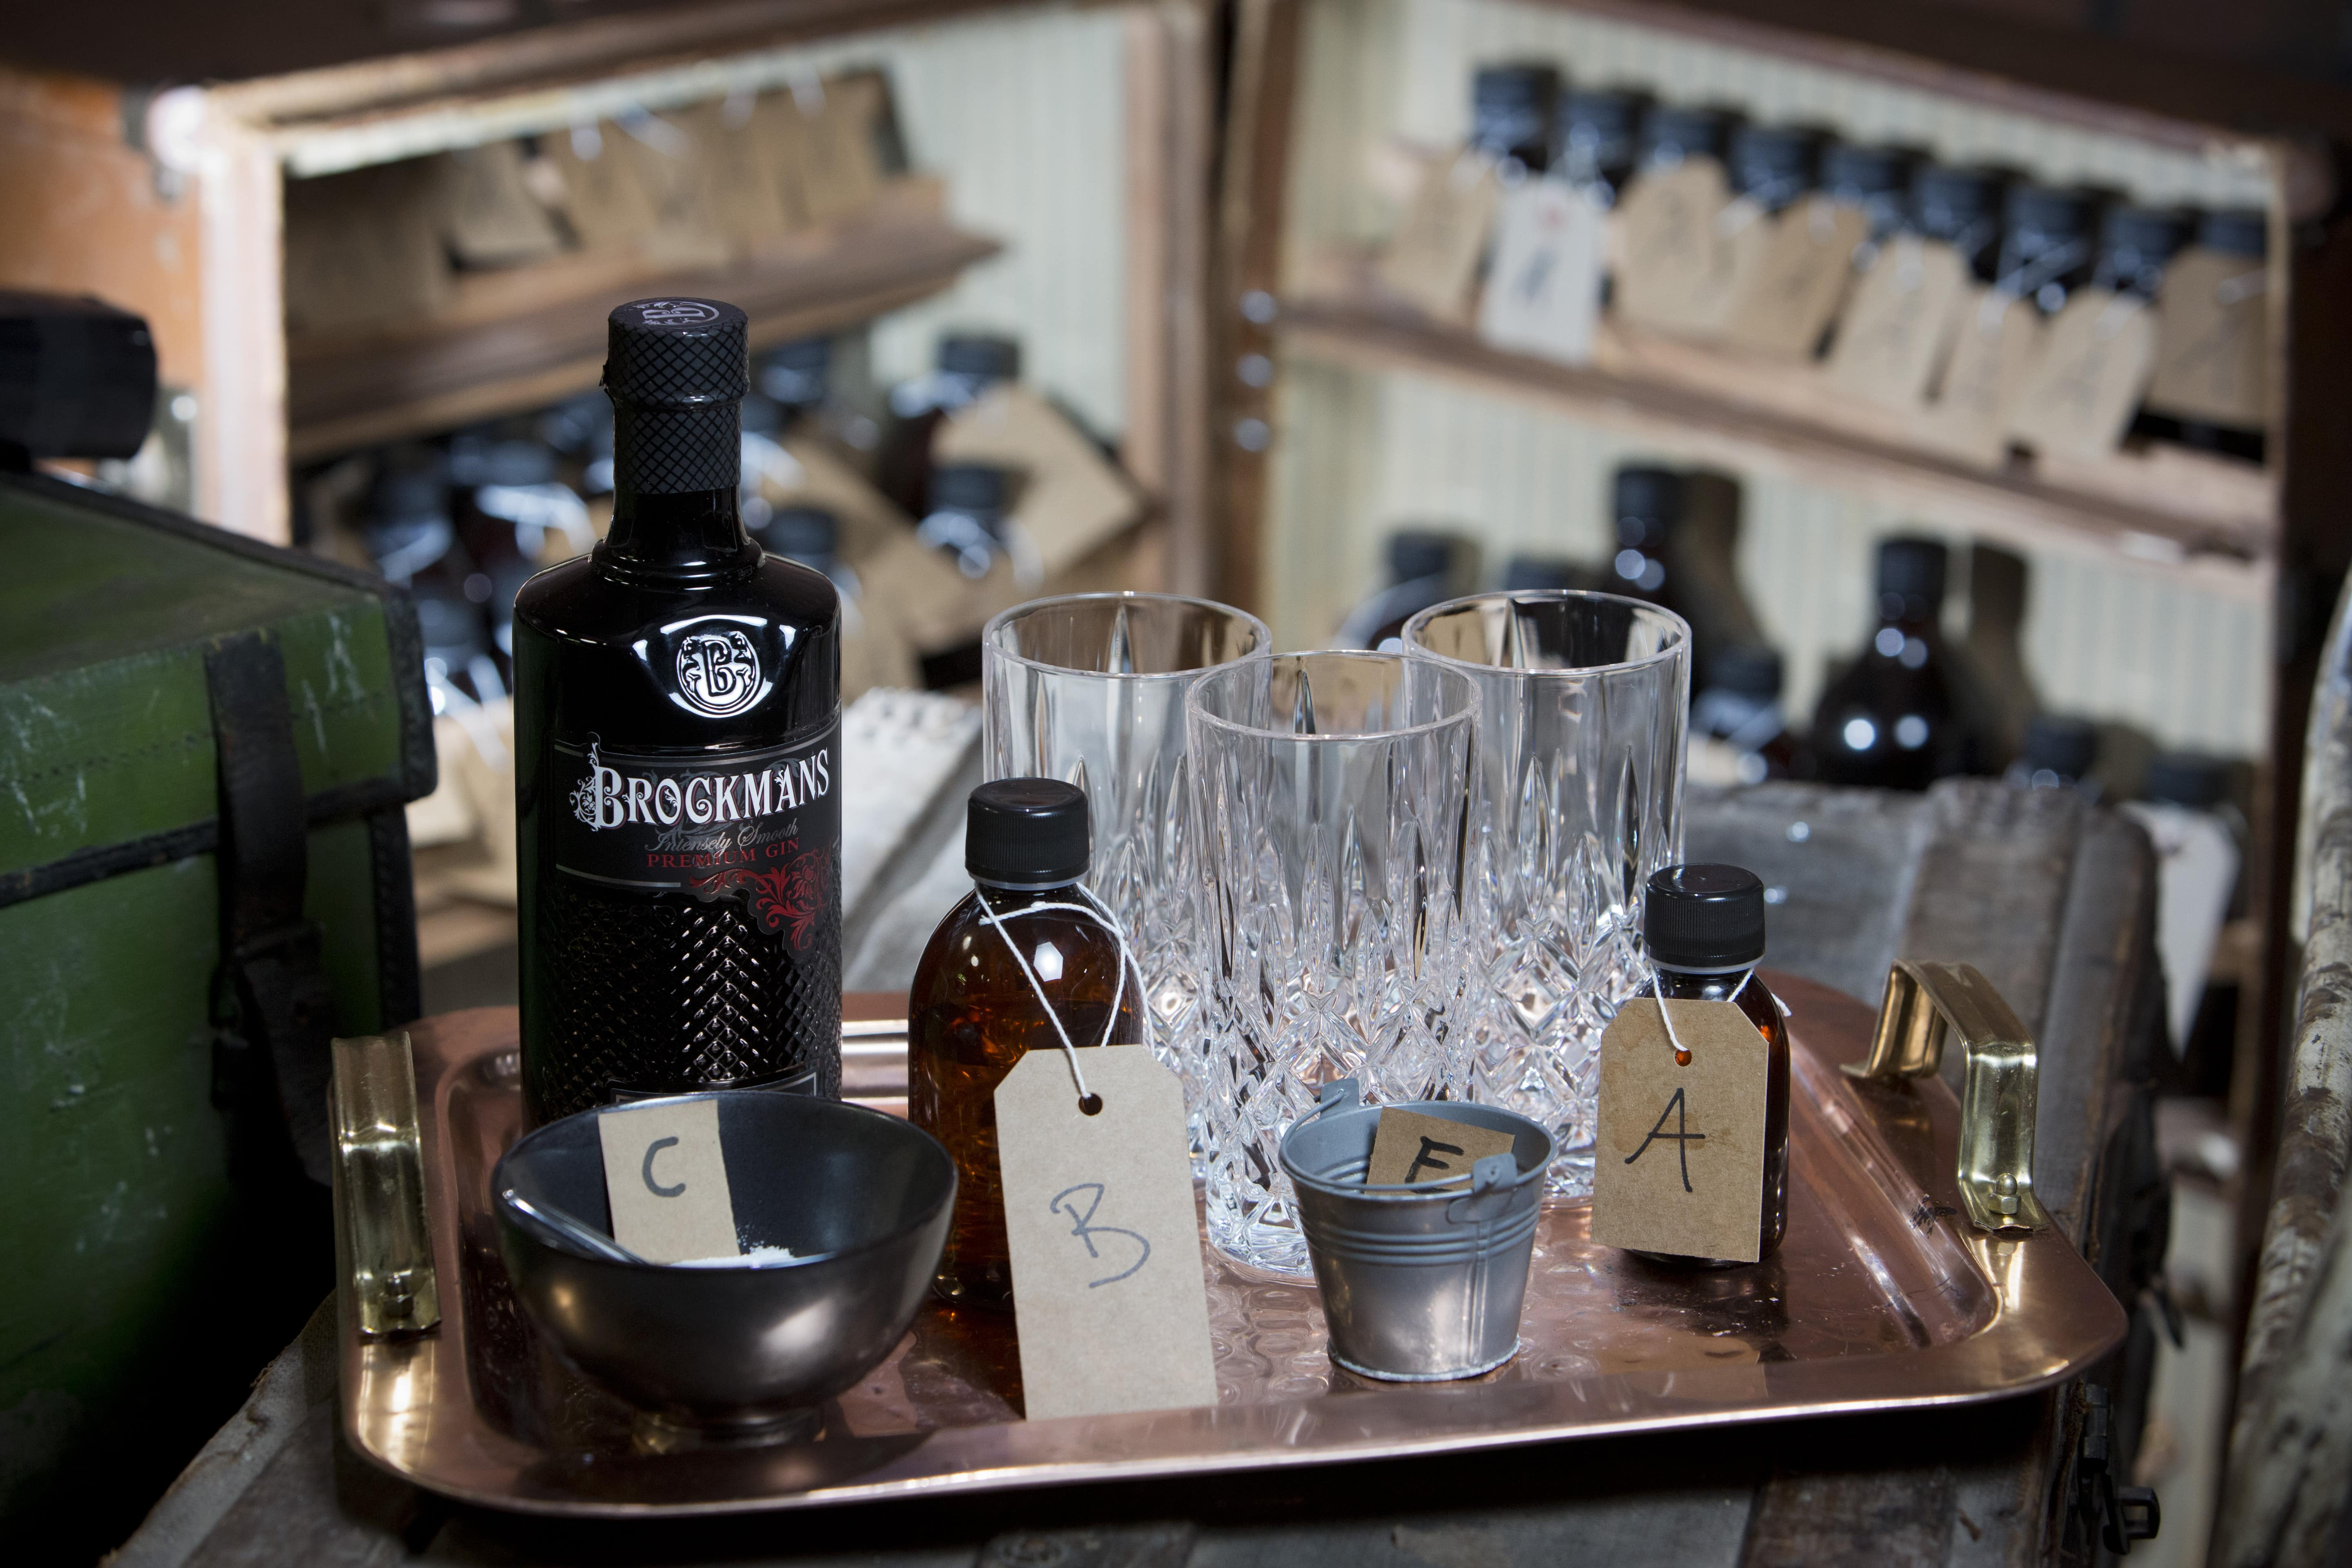 Brockmans Press For Gin